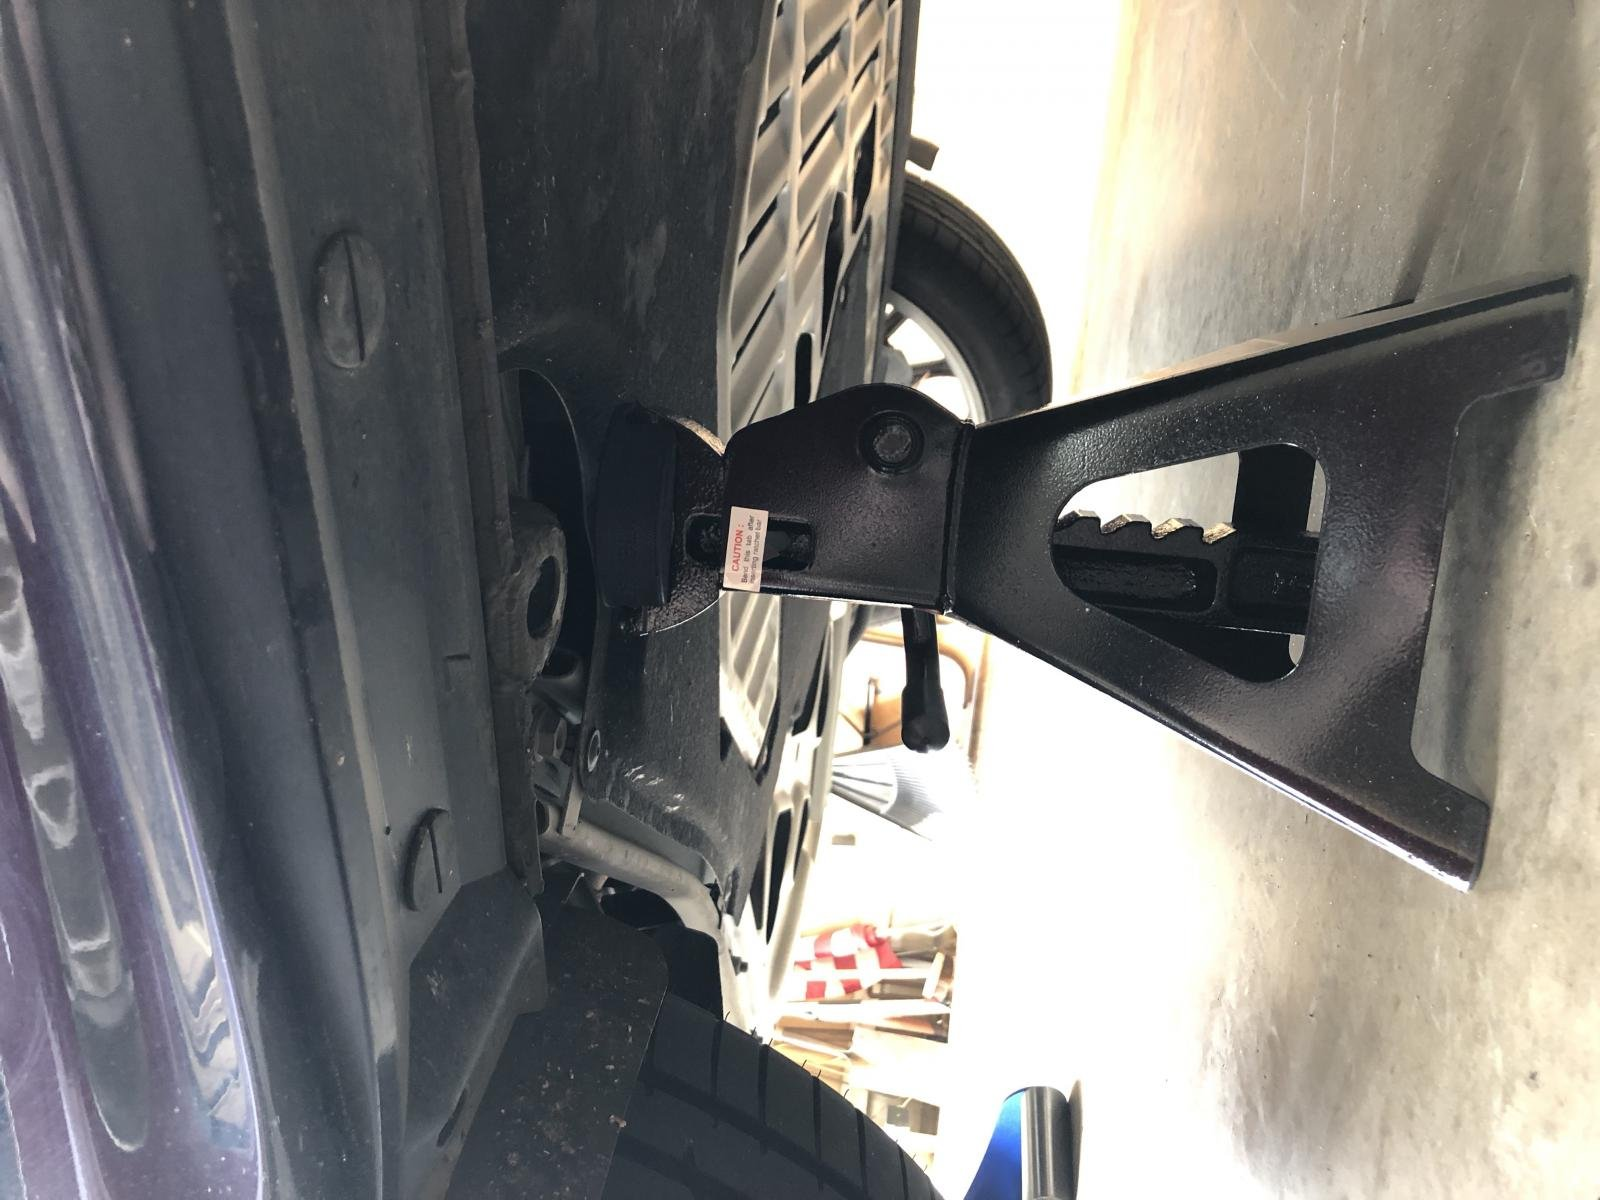 Dan's version of oil change with pictures-vi7woux7rhi8nj9oficpuw.jpg